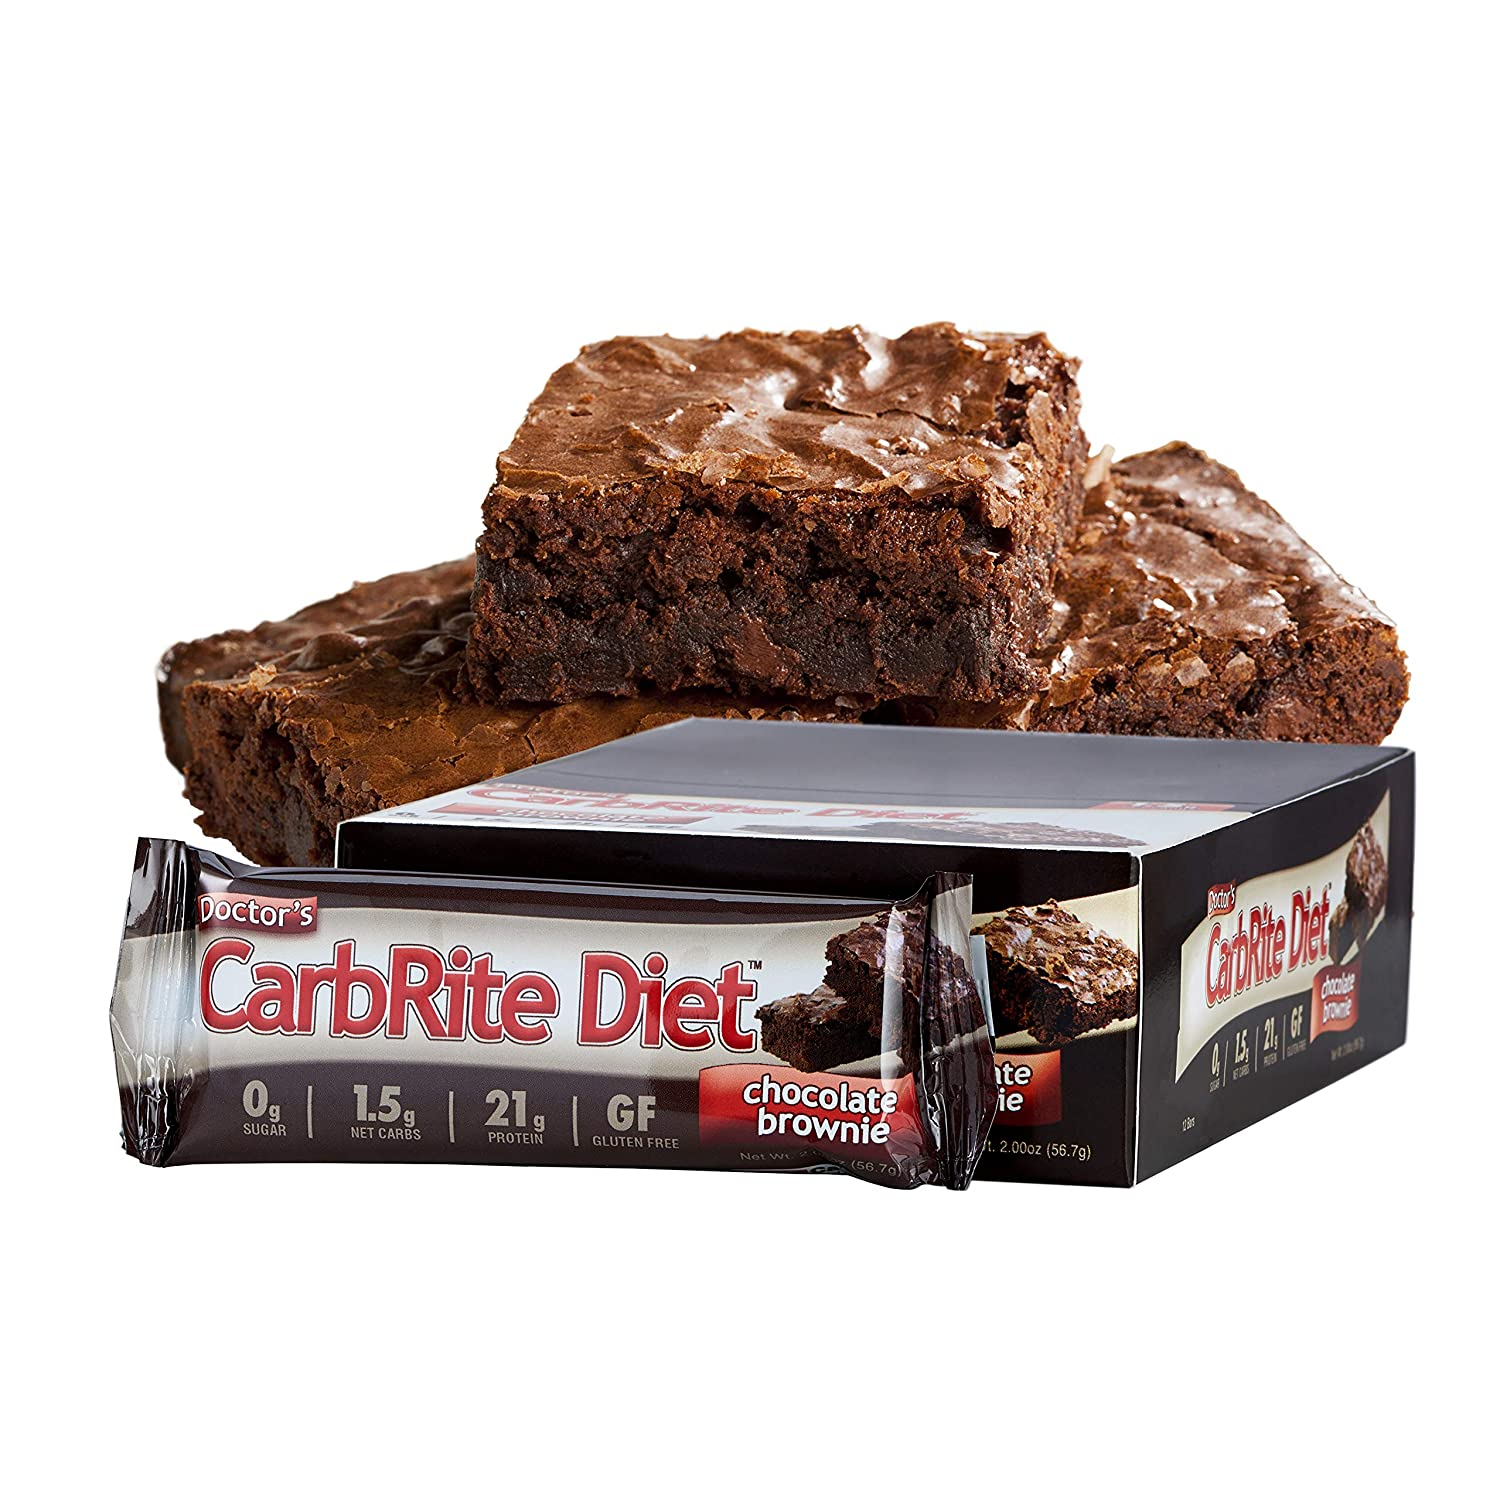 Universal Nutrition CarbRite Diet Bar Chocolate Brownie - 12 Barras: Amazon.es: Salud y cuidado personal